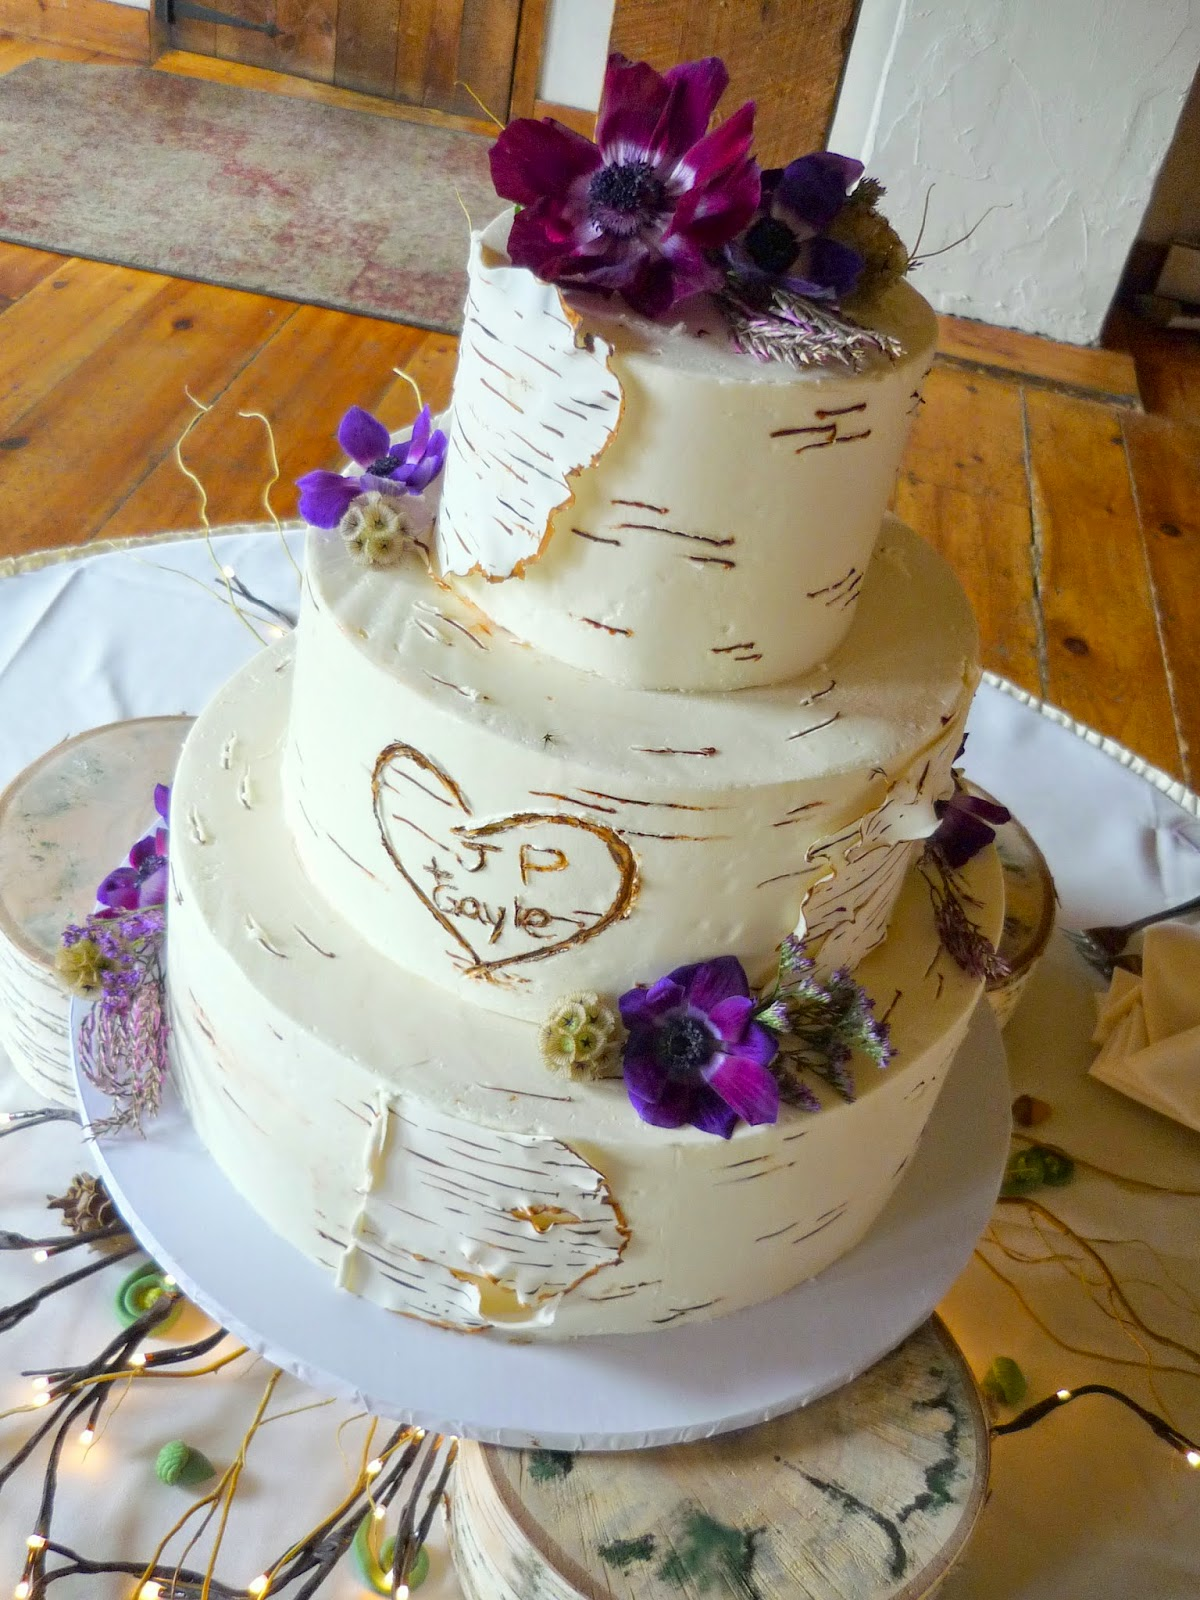 Artisan Bake Shop Our Favorite Venues for Wedding Cakes